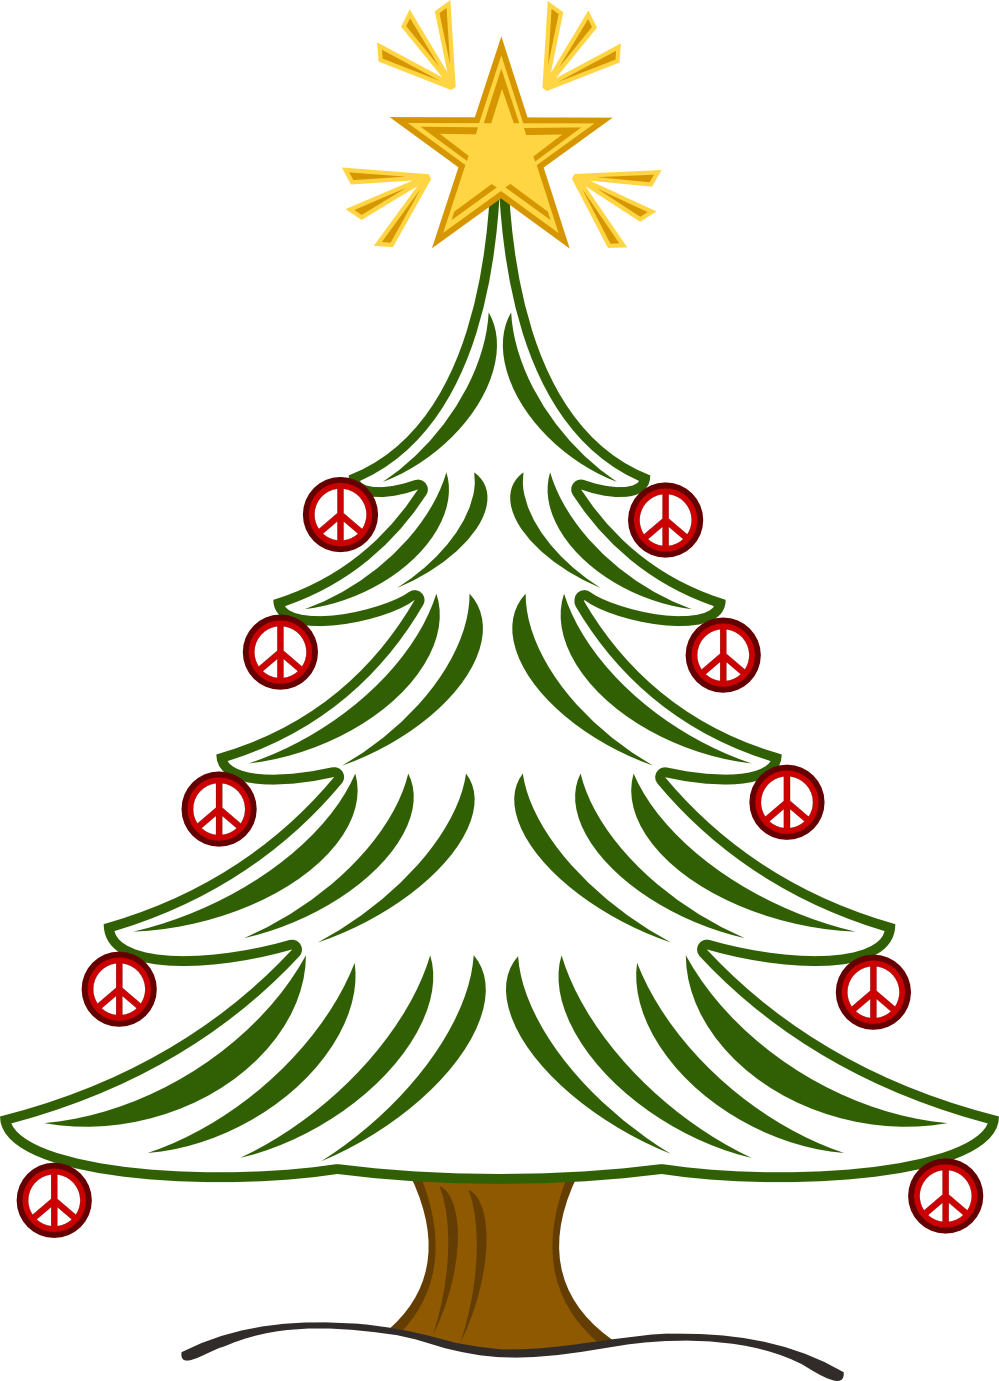 Christmas peace sign clipart free library christmas peace sign clip art | tree xmas christmas peace symbol ... free library